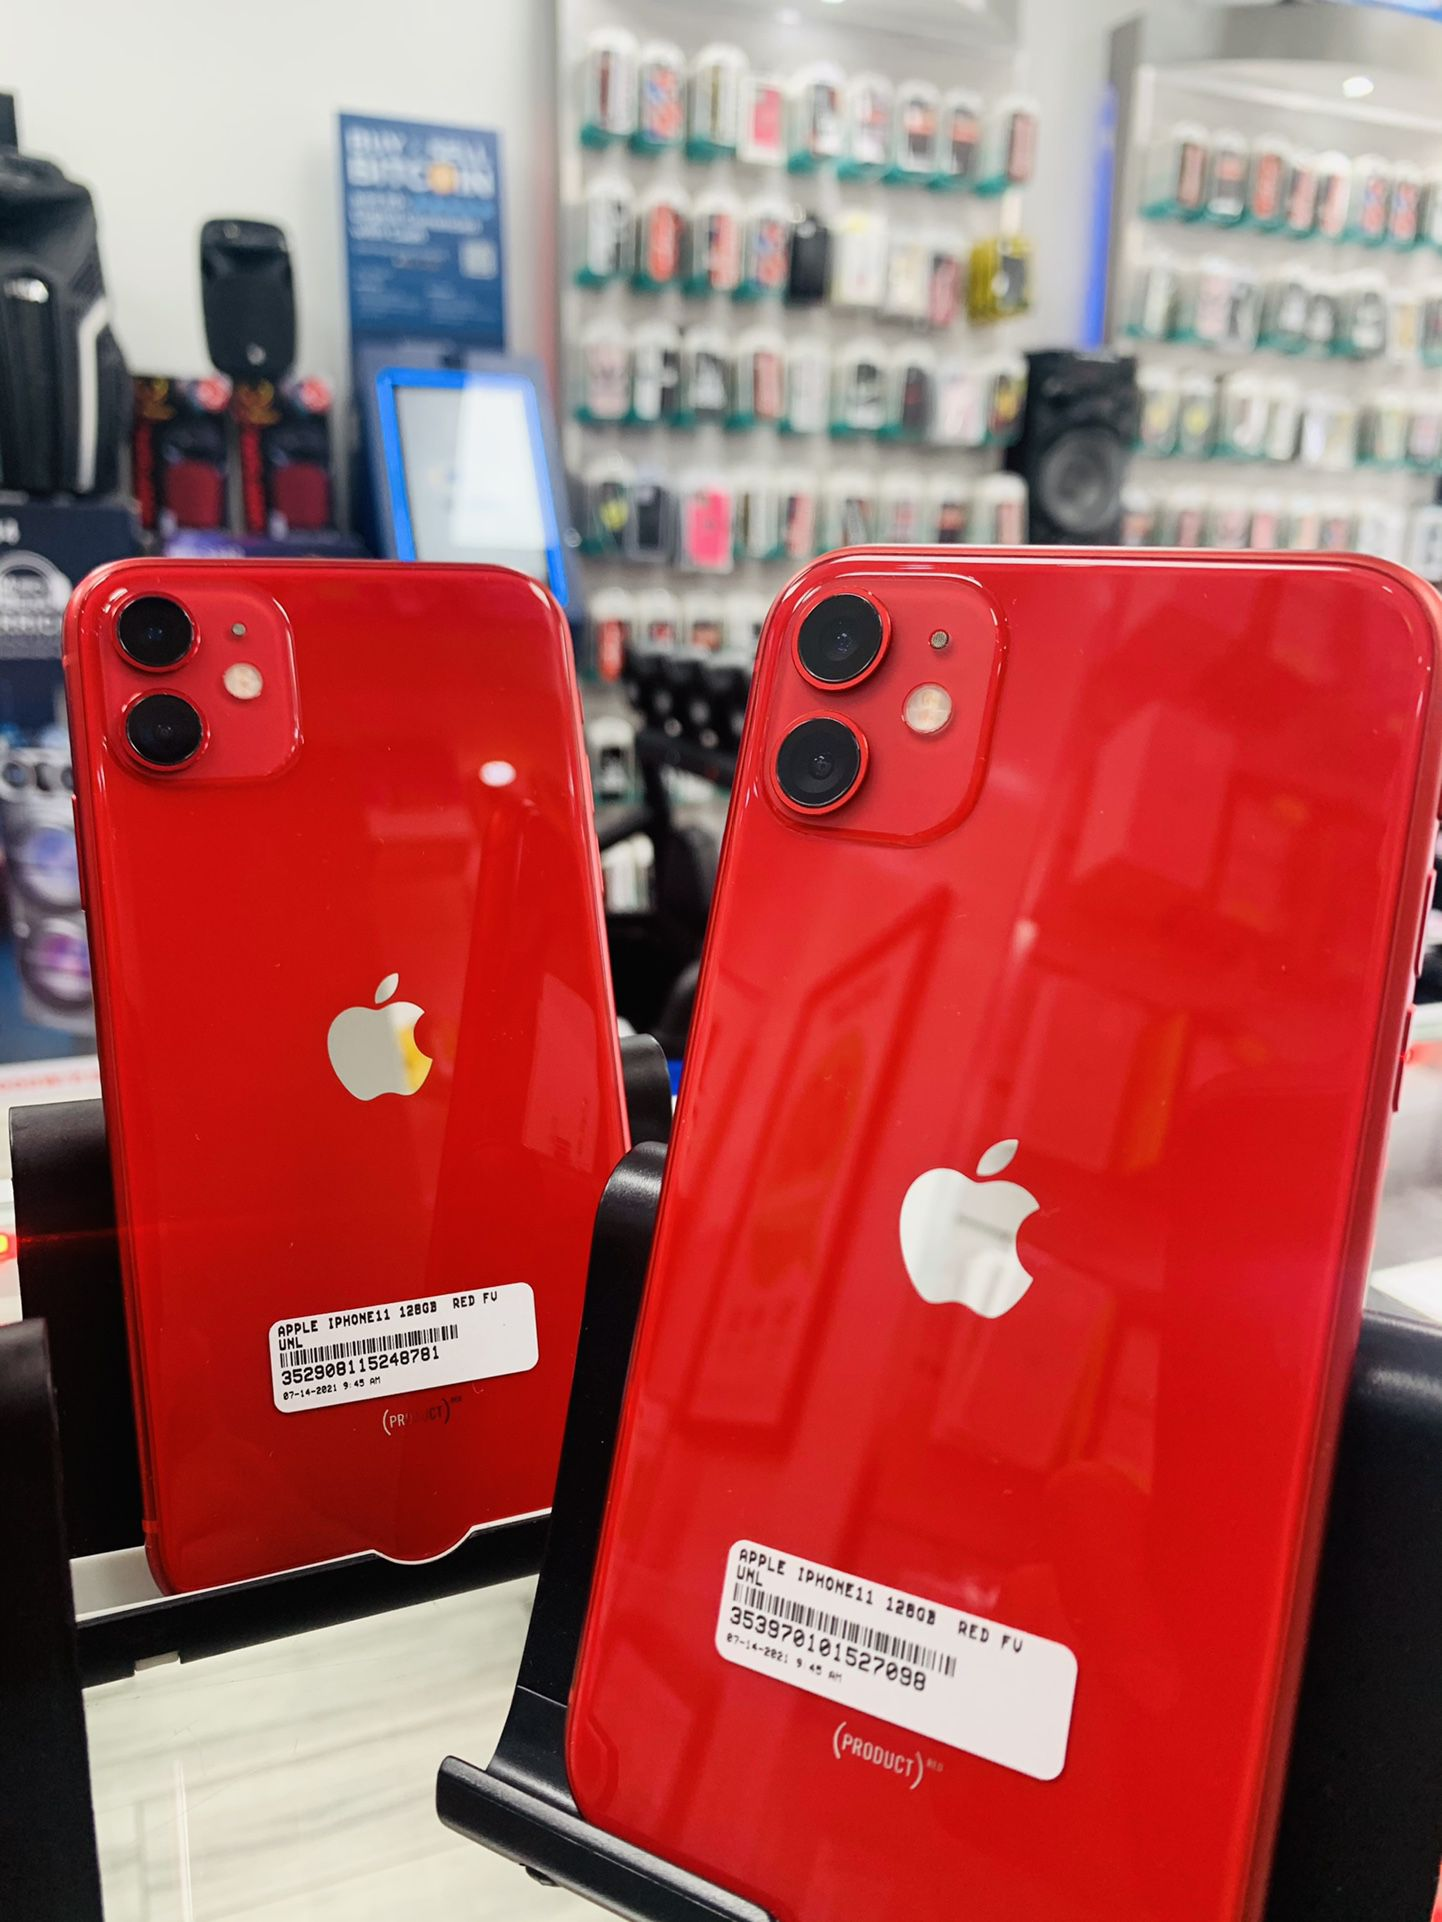 iPhone 11 128GB Unlocked For $599.99 Or as Low As $50 Down Payment